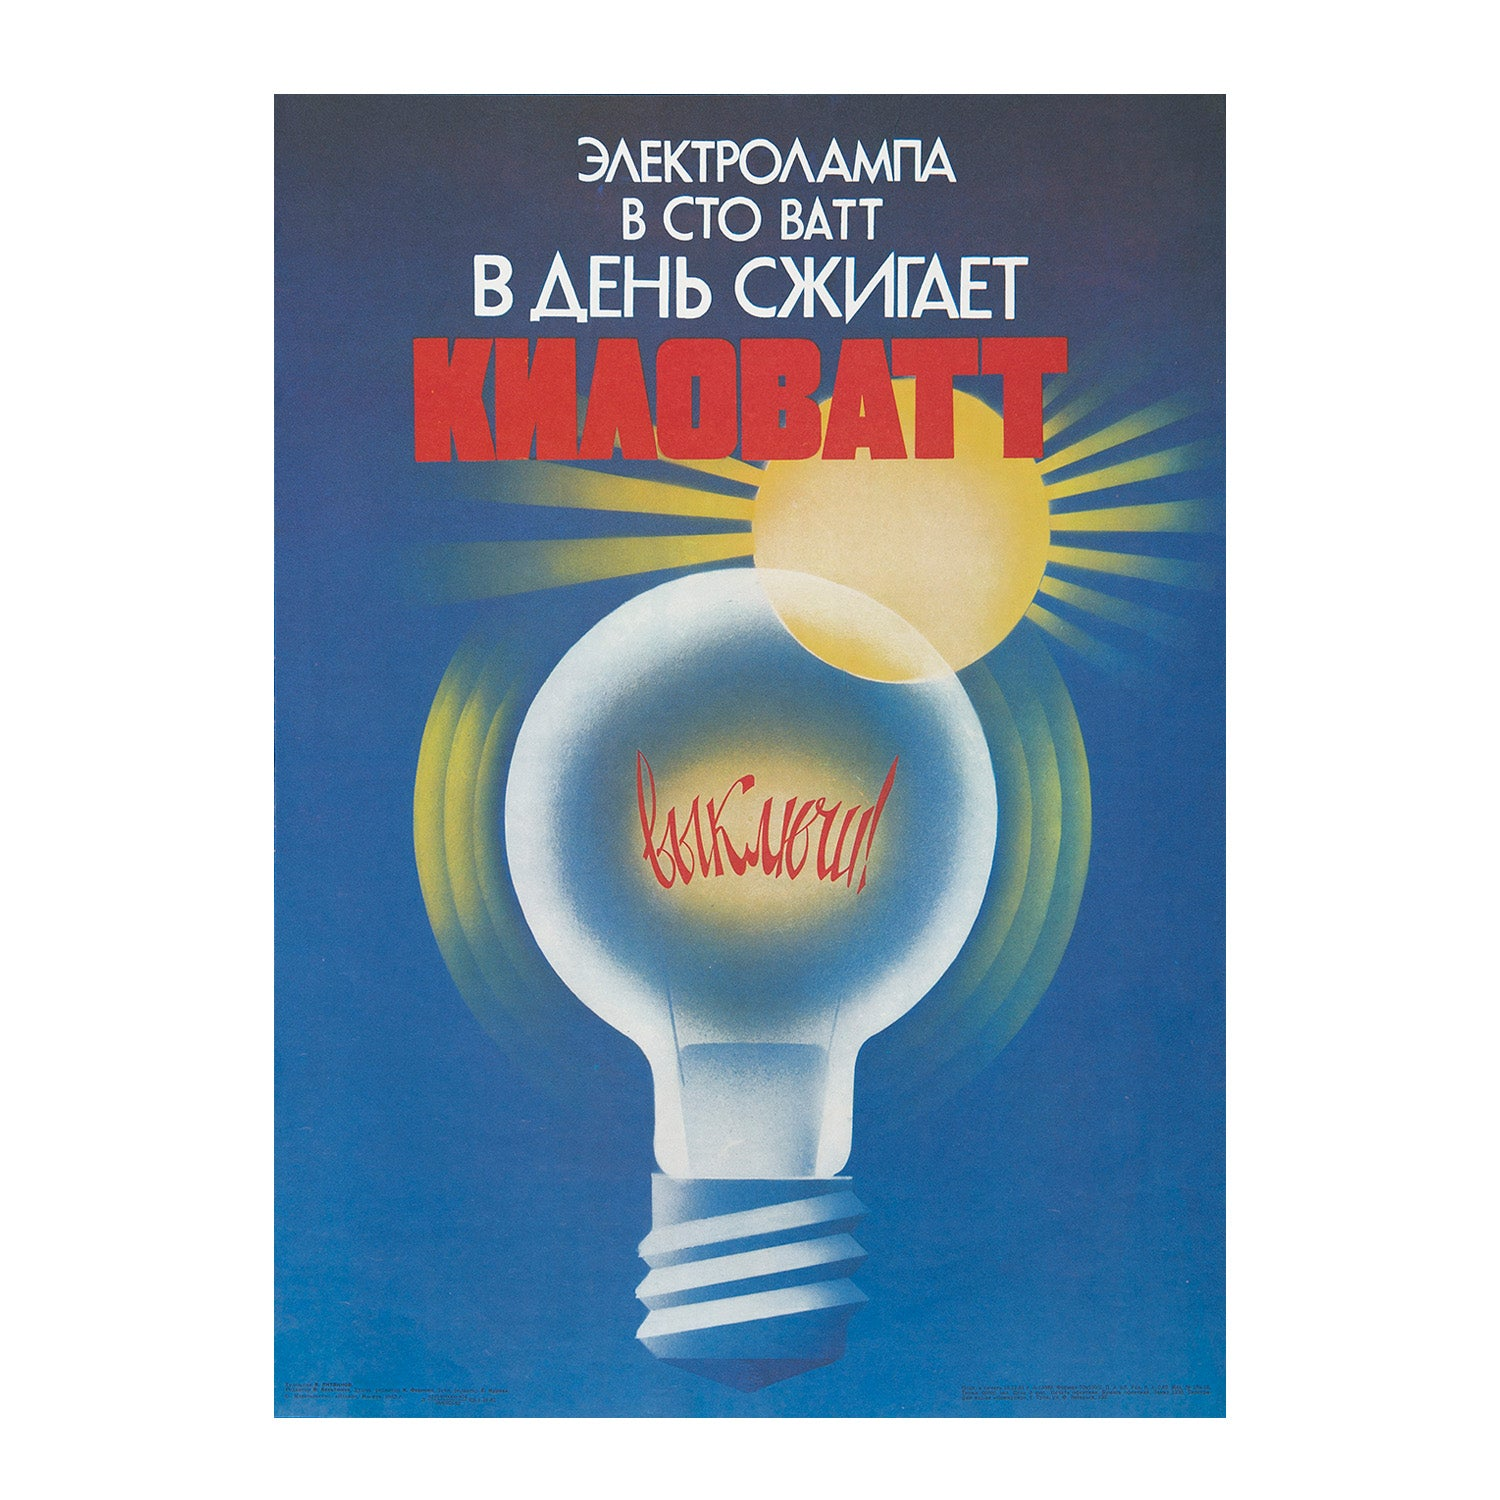 One hundred watt electric lamp burns a kilowatt per day. Switch Off.